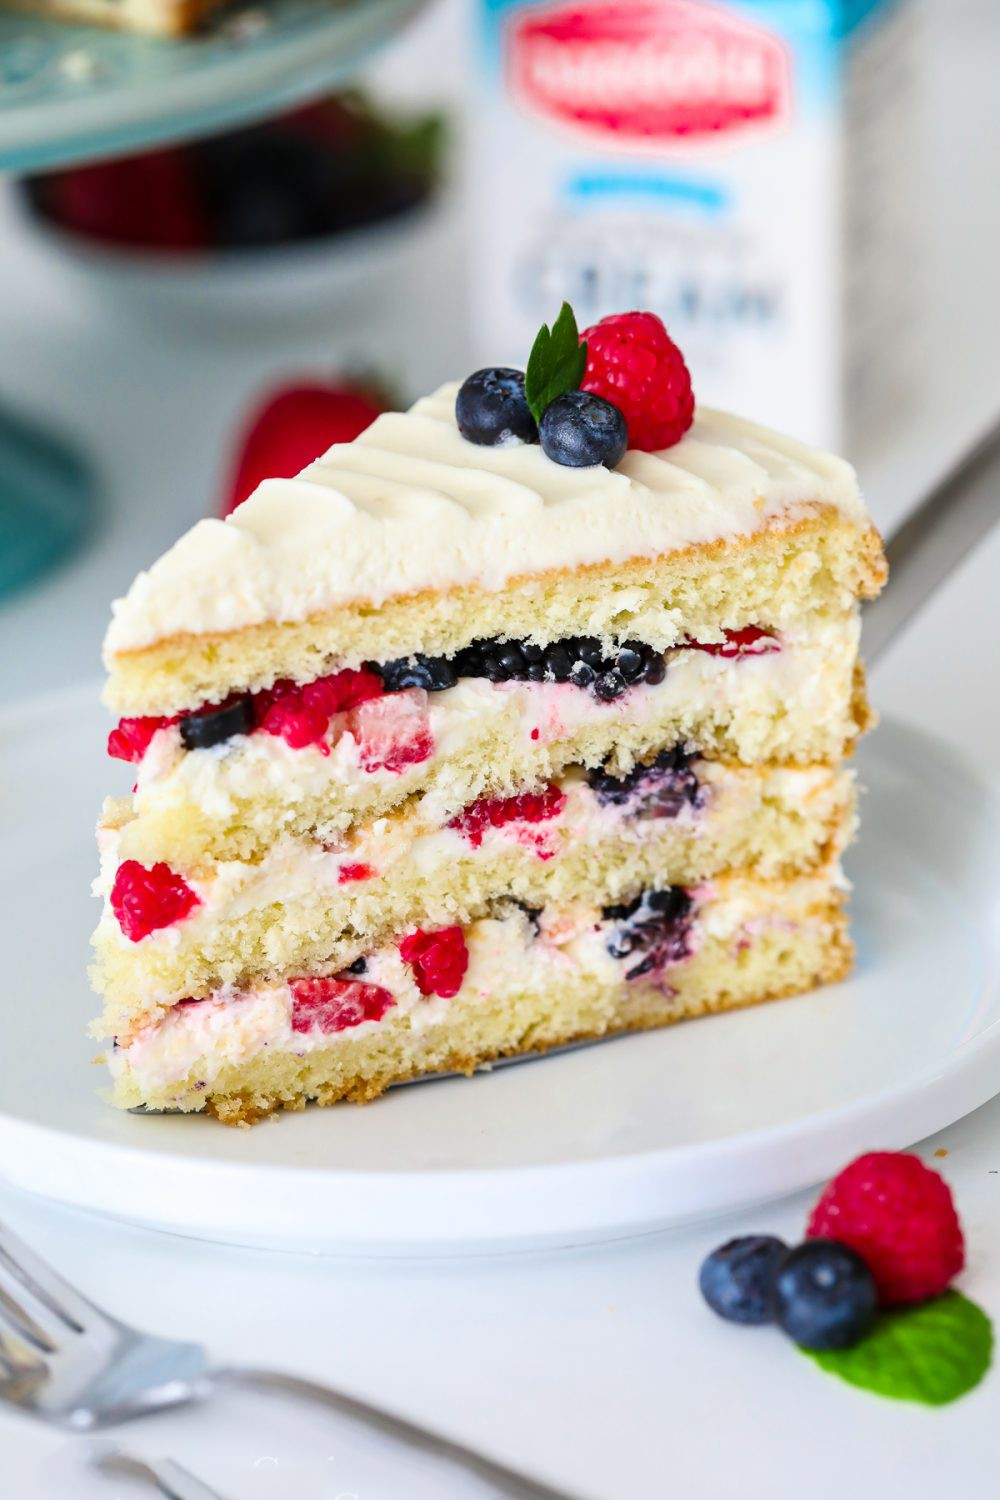 Berry Chantilly Cake - This Chantilly berry cake recipe loaded with 4 different berries, sweet mascarpone cream cheese frosting, and 4 fluffy vanilla cake layers.